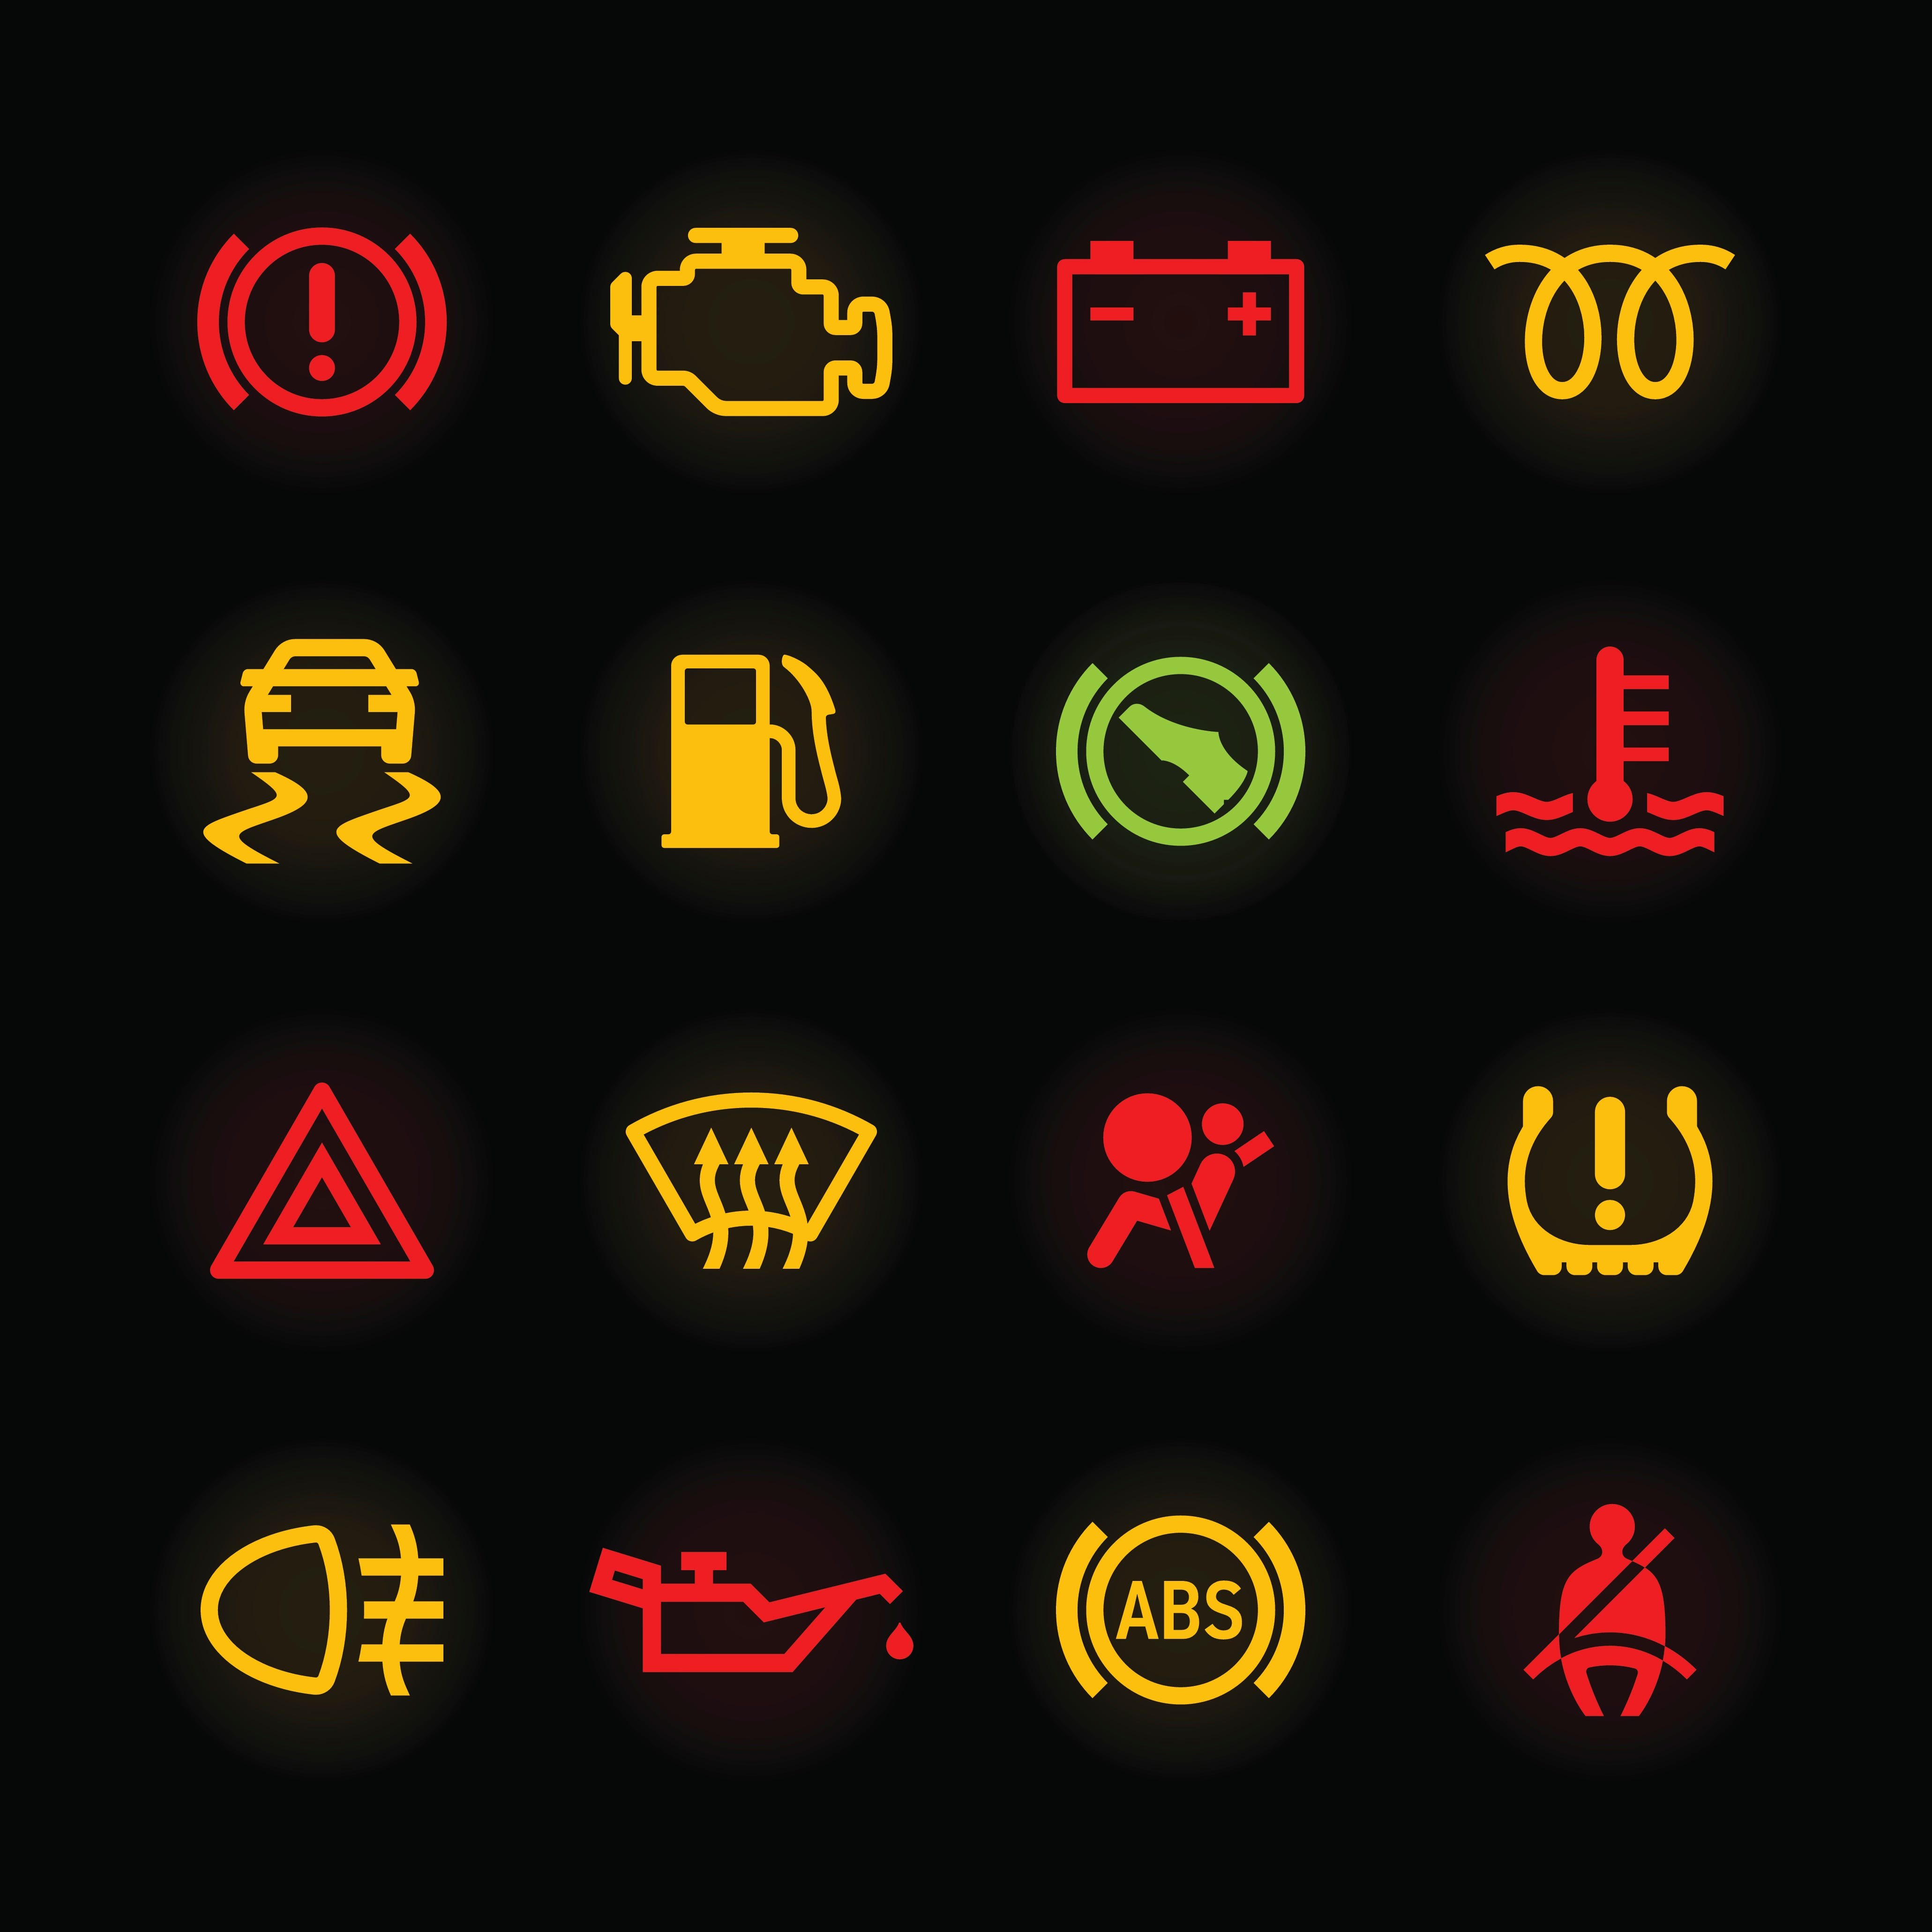 Study: Millennials are in the dark about this symbol on their car dashboards